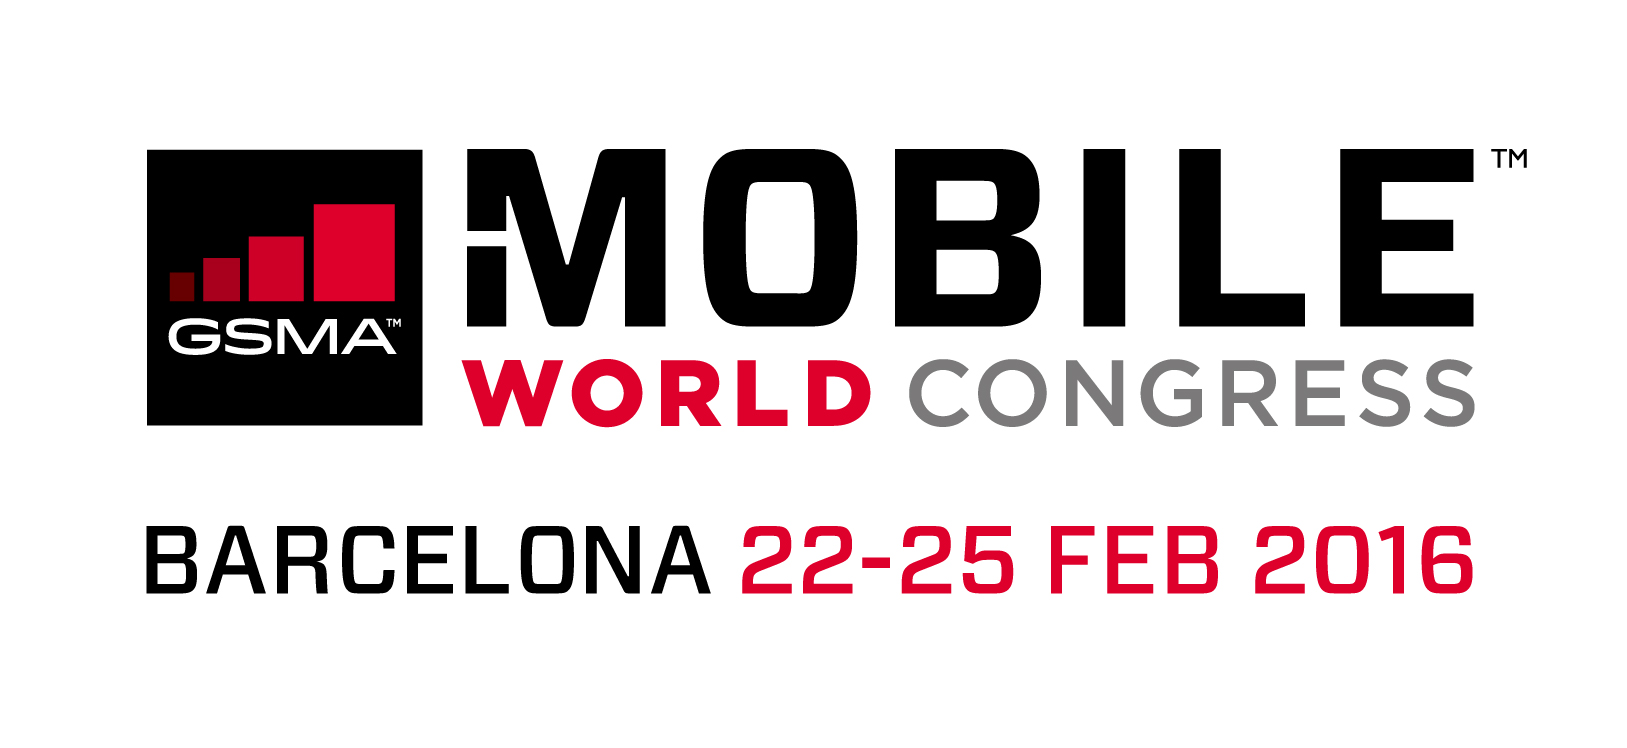 Mobile World Congress, cita anual la innovación